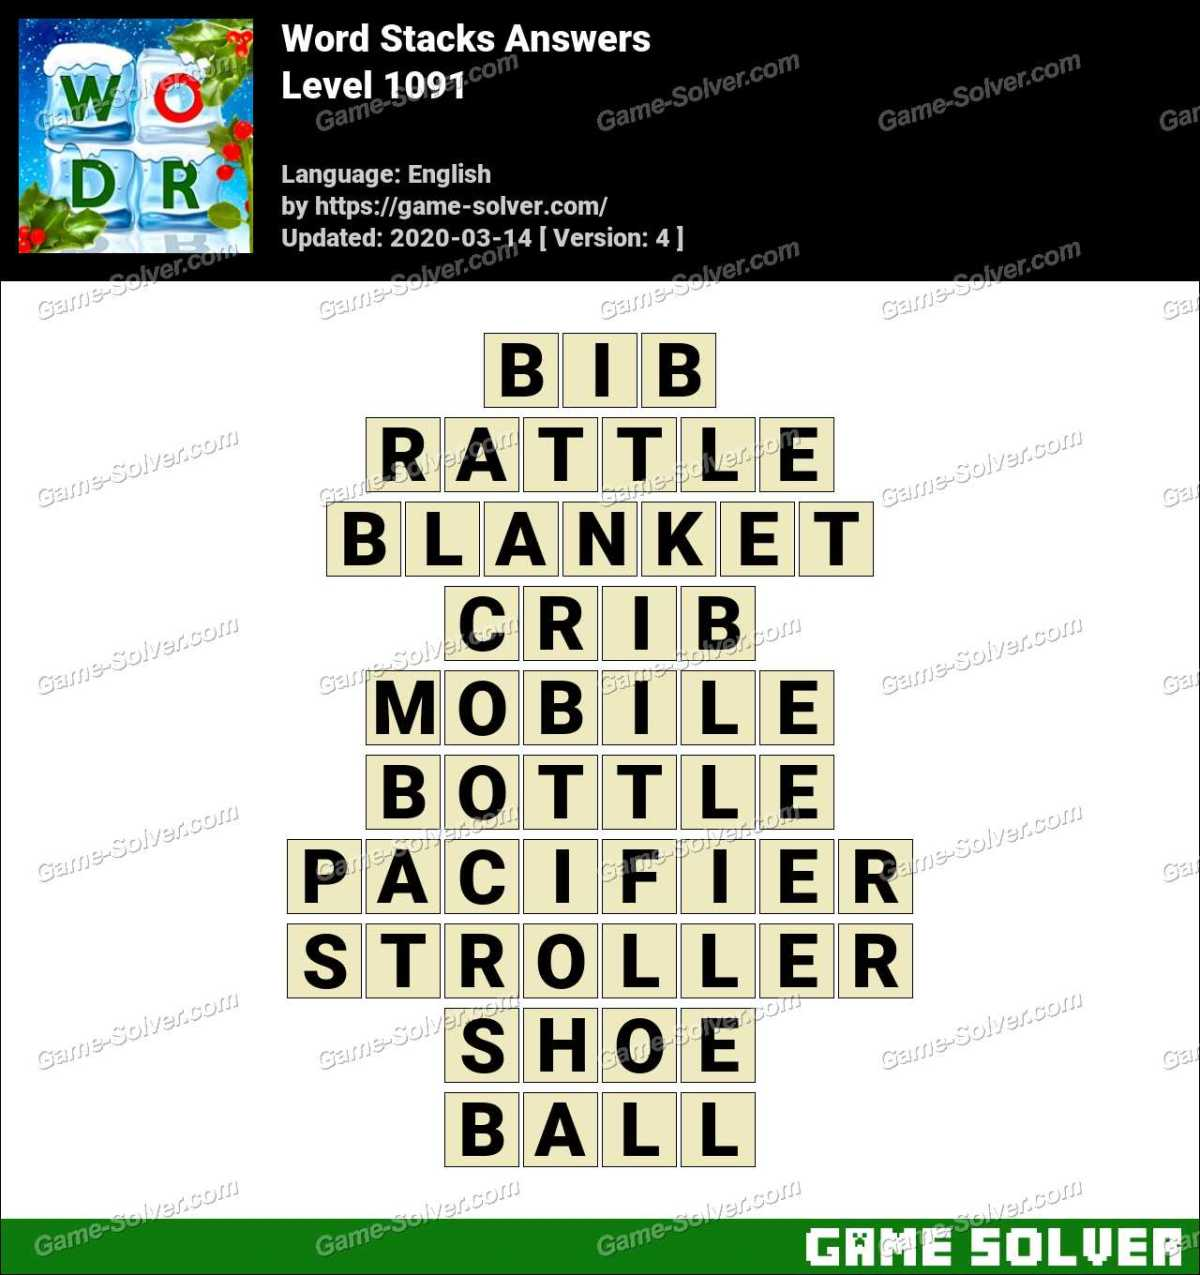 Word Stacks Level 1091 Answers